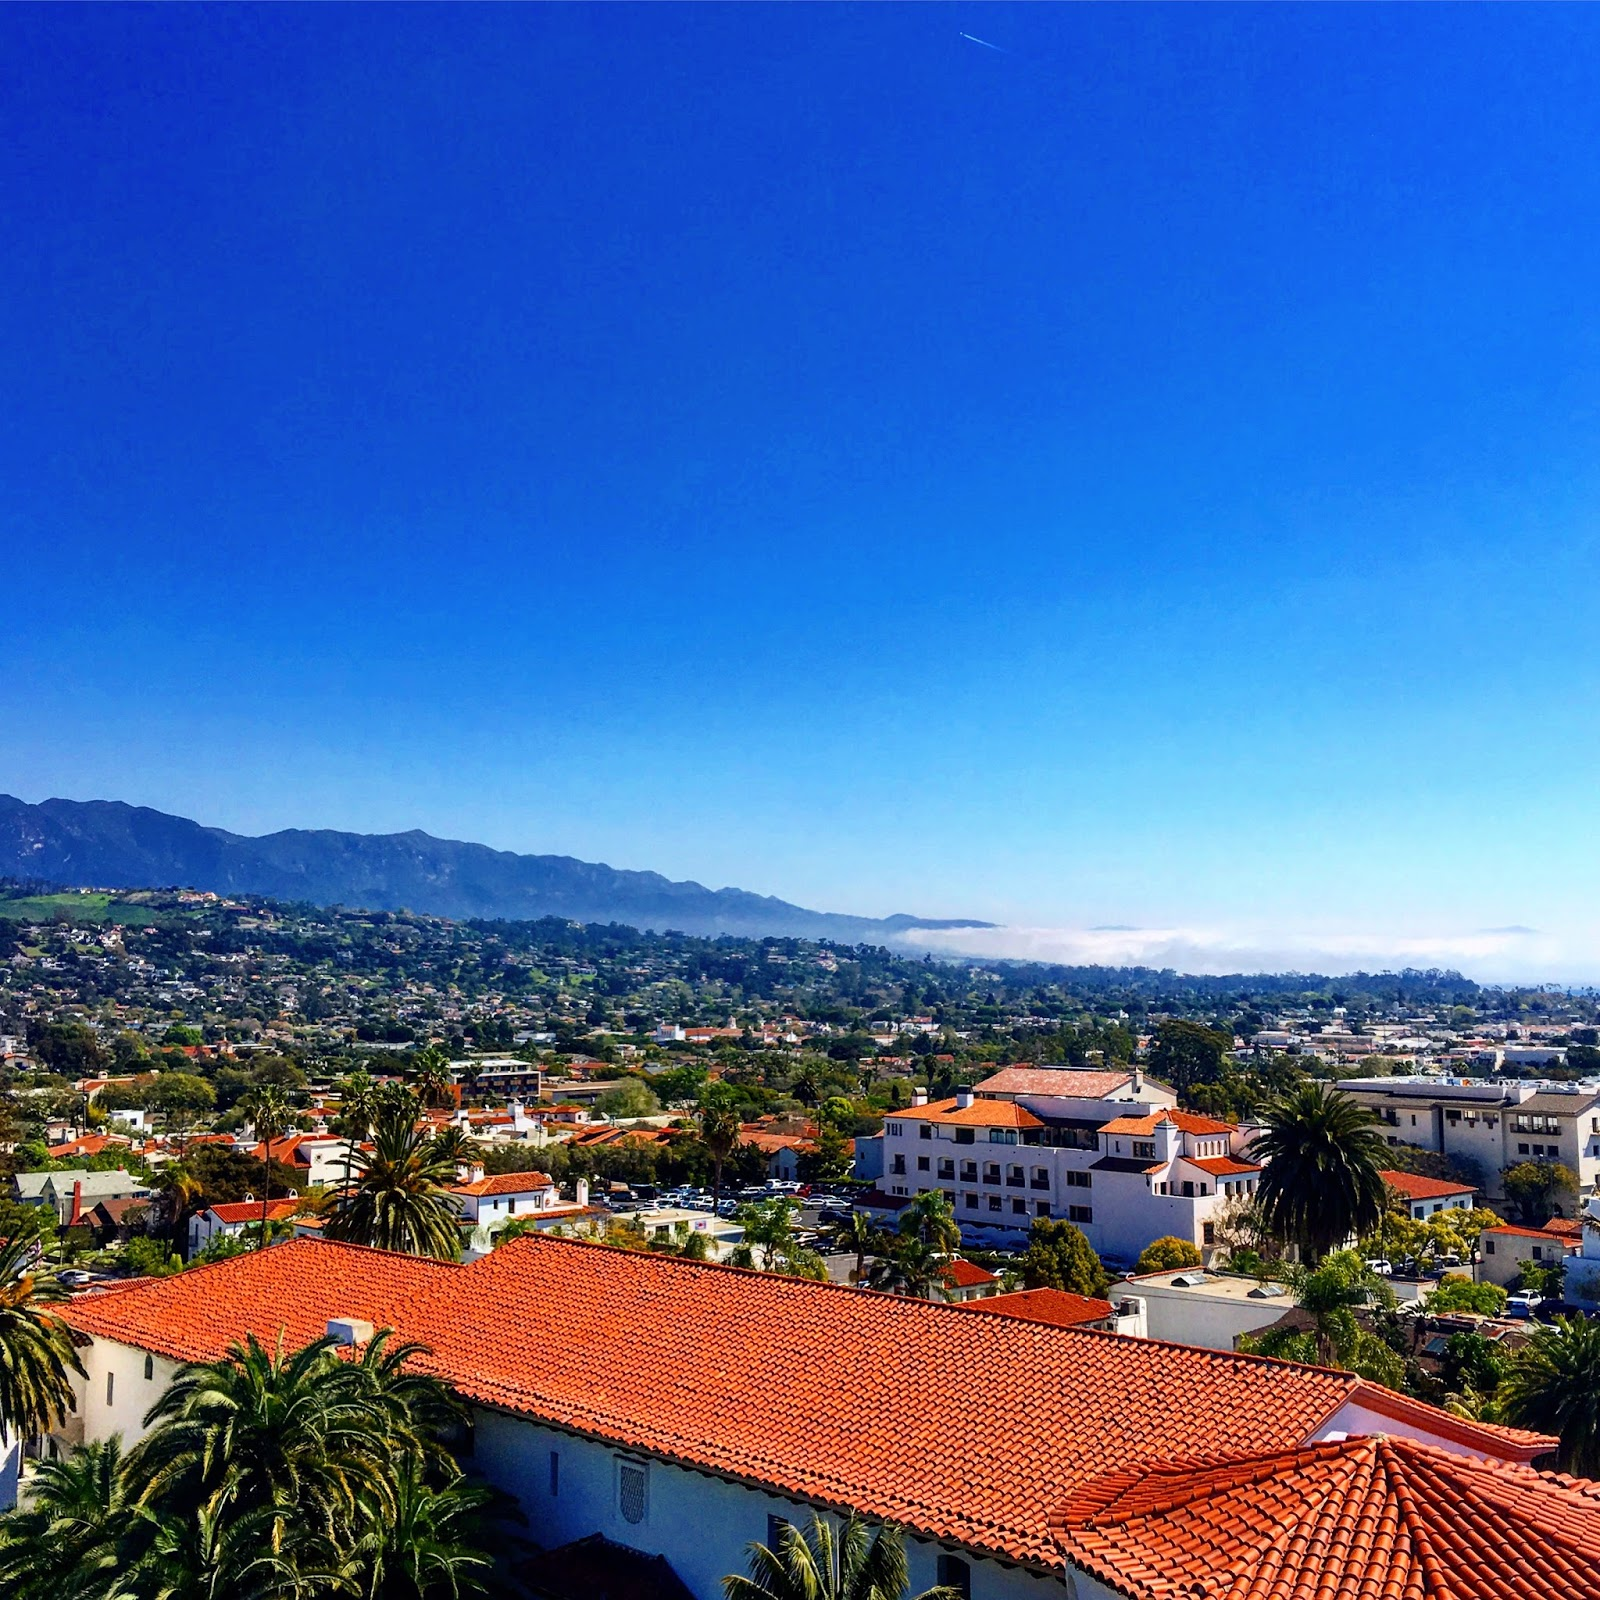 Things to do in Santa Barbara, Views from the Santa Barbara court house